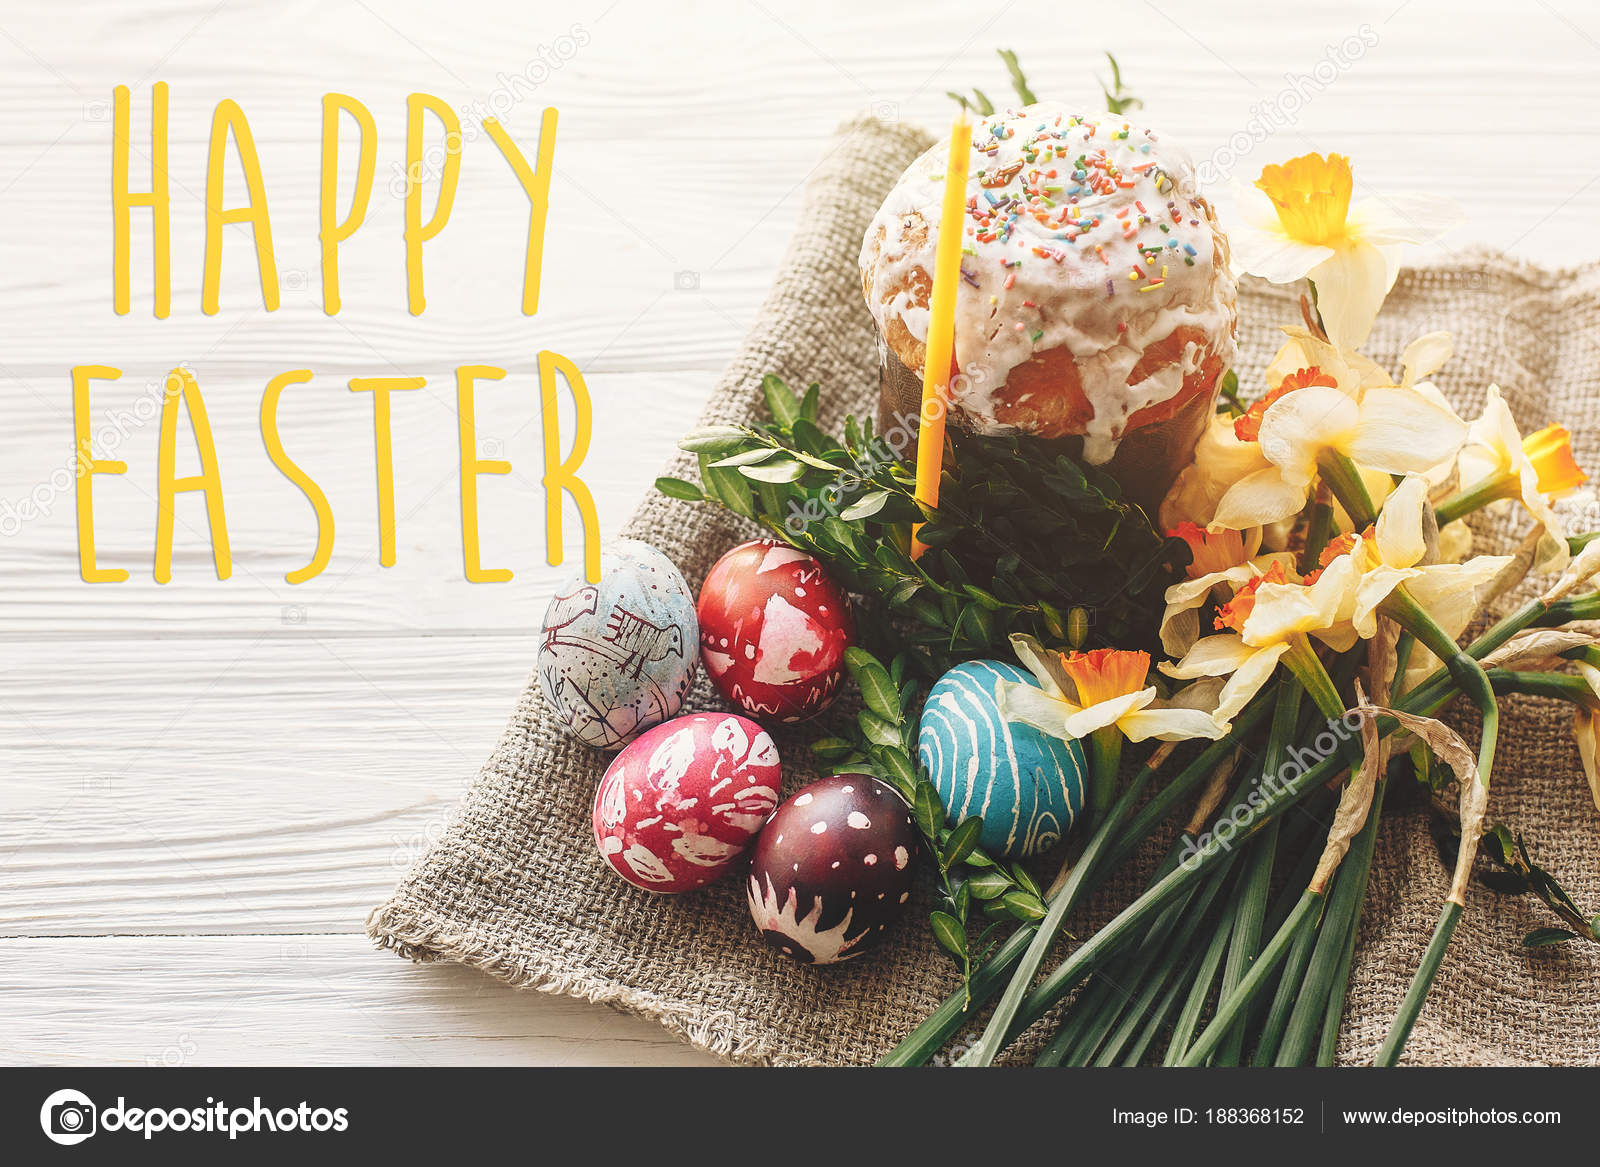 Happy Easter Text Seasons Greetings Card Stylish Painted Eggs And Cake On White Rustic Wooden Background With Spring Flowers Candle Modern